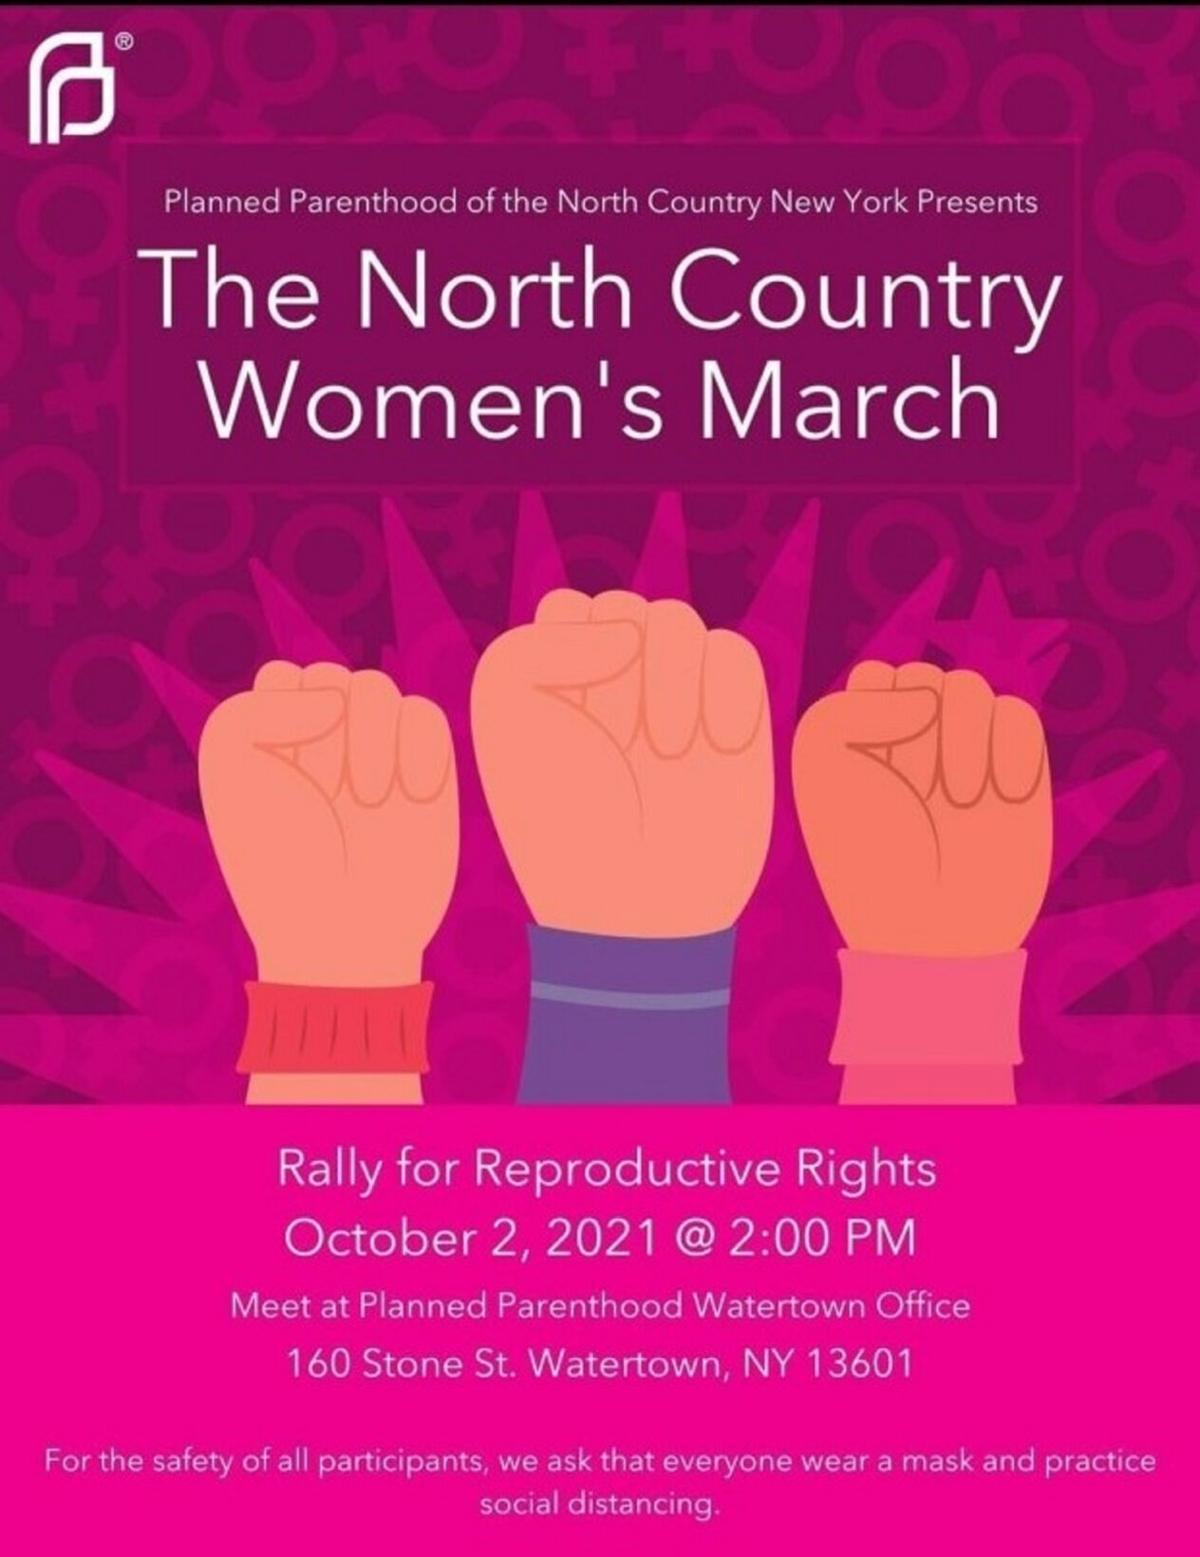 Area reproductive rights events planned